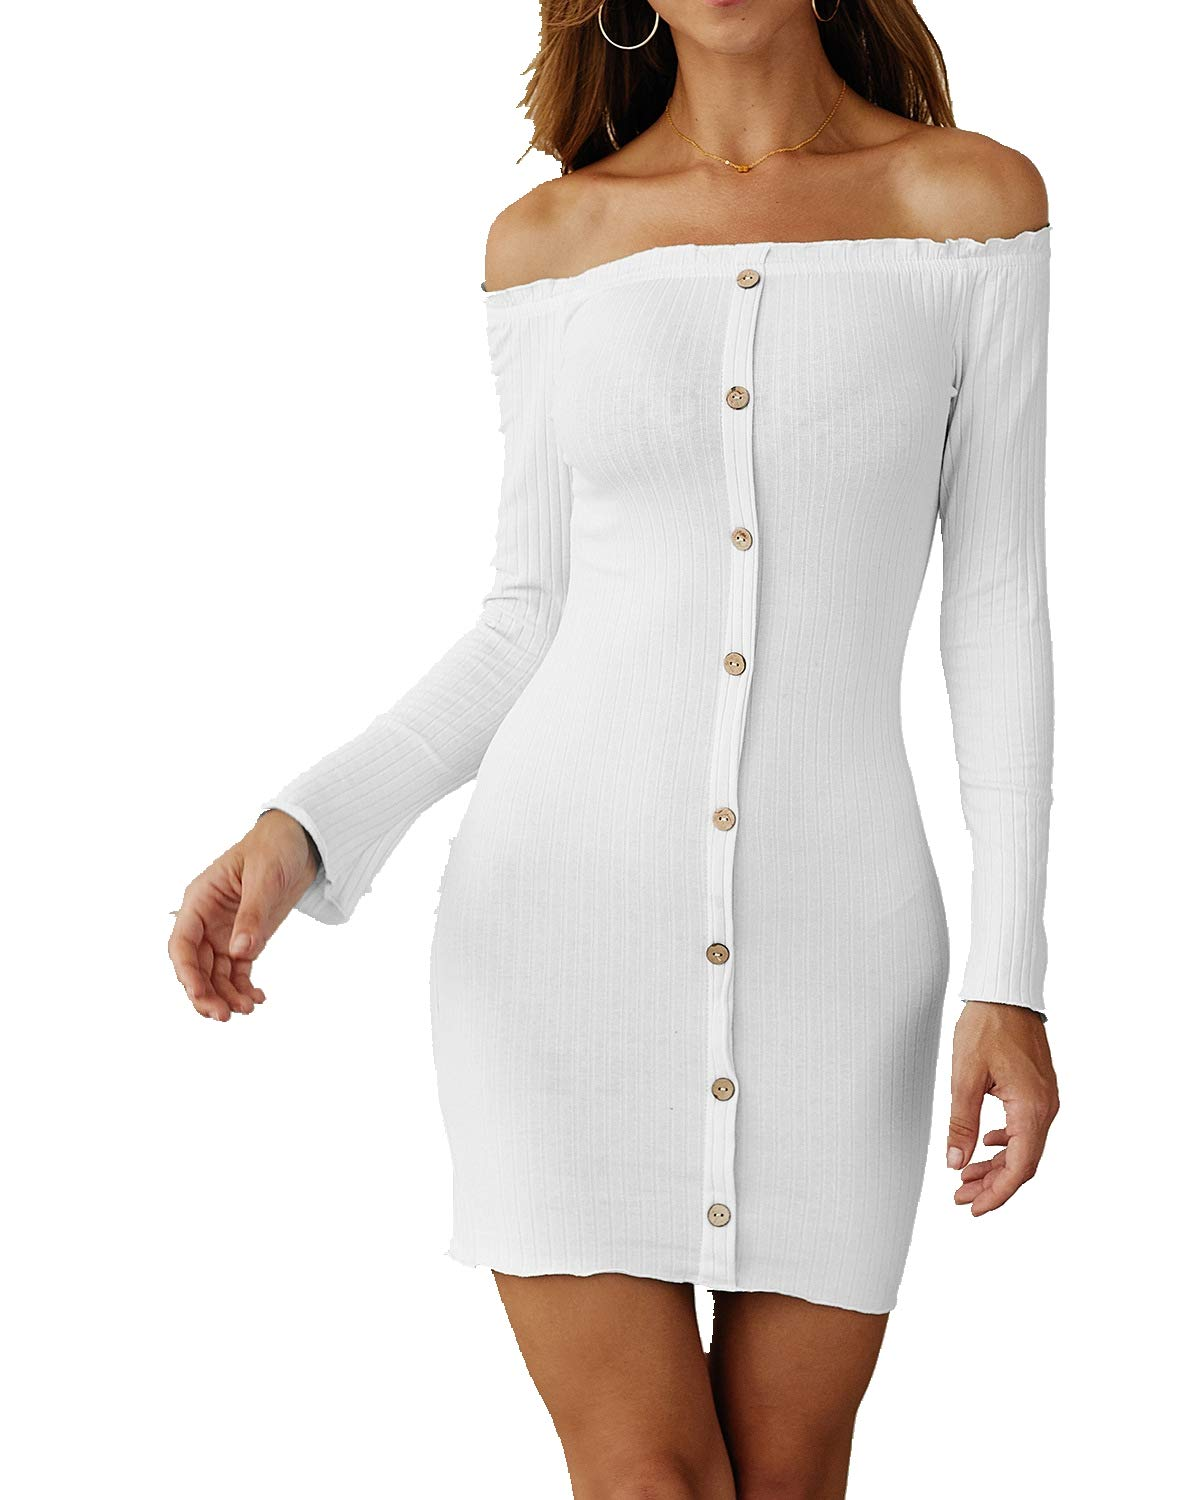 Women's Sexy Off Shoulder Knit Mini Dress,Long Sleeve Ruffle Button Down Slim Fitted Evening Bodycon Club Sweater Dresses White by KINGLEN Womens Dress